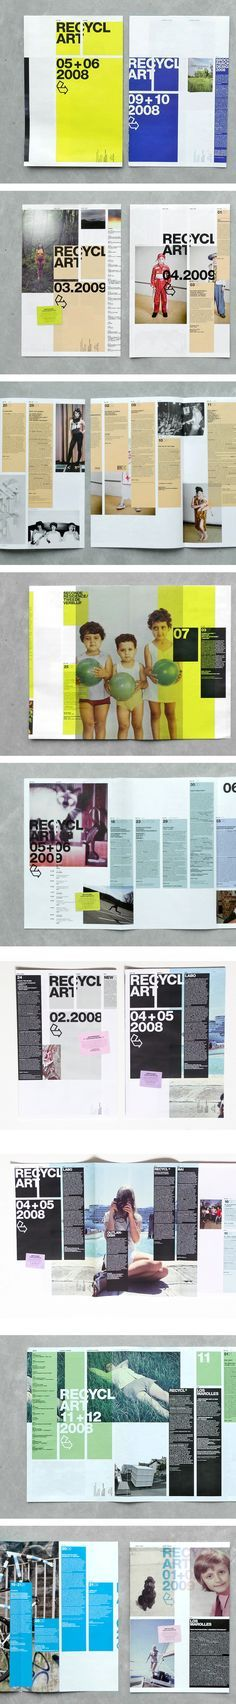 Recyclart 2009 #magazine #layout I really like the color blocks and the photos and color scheme, this might be good for a fashion or modern art magazine: